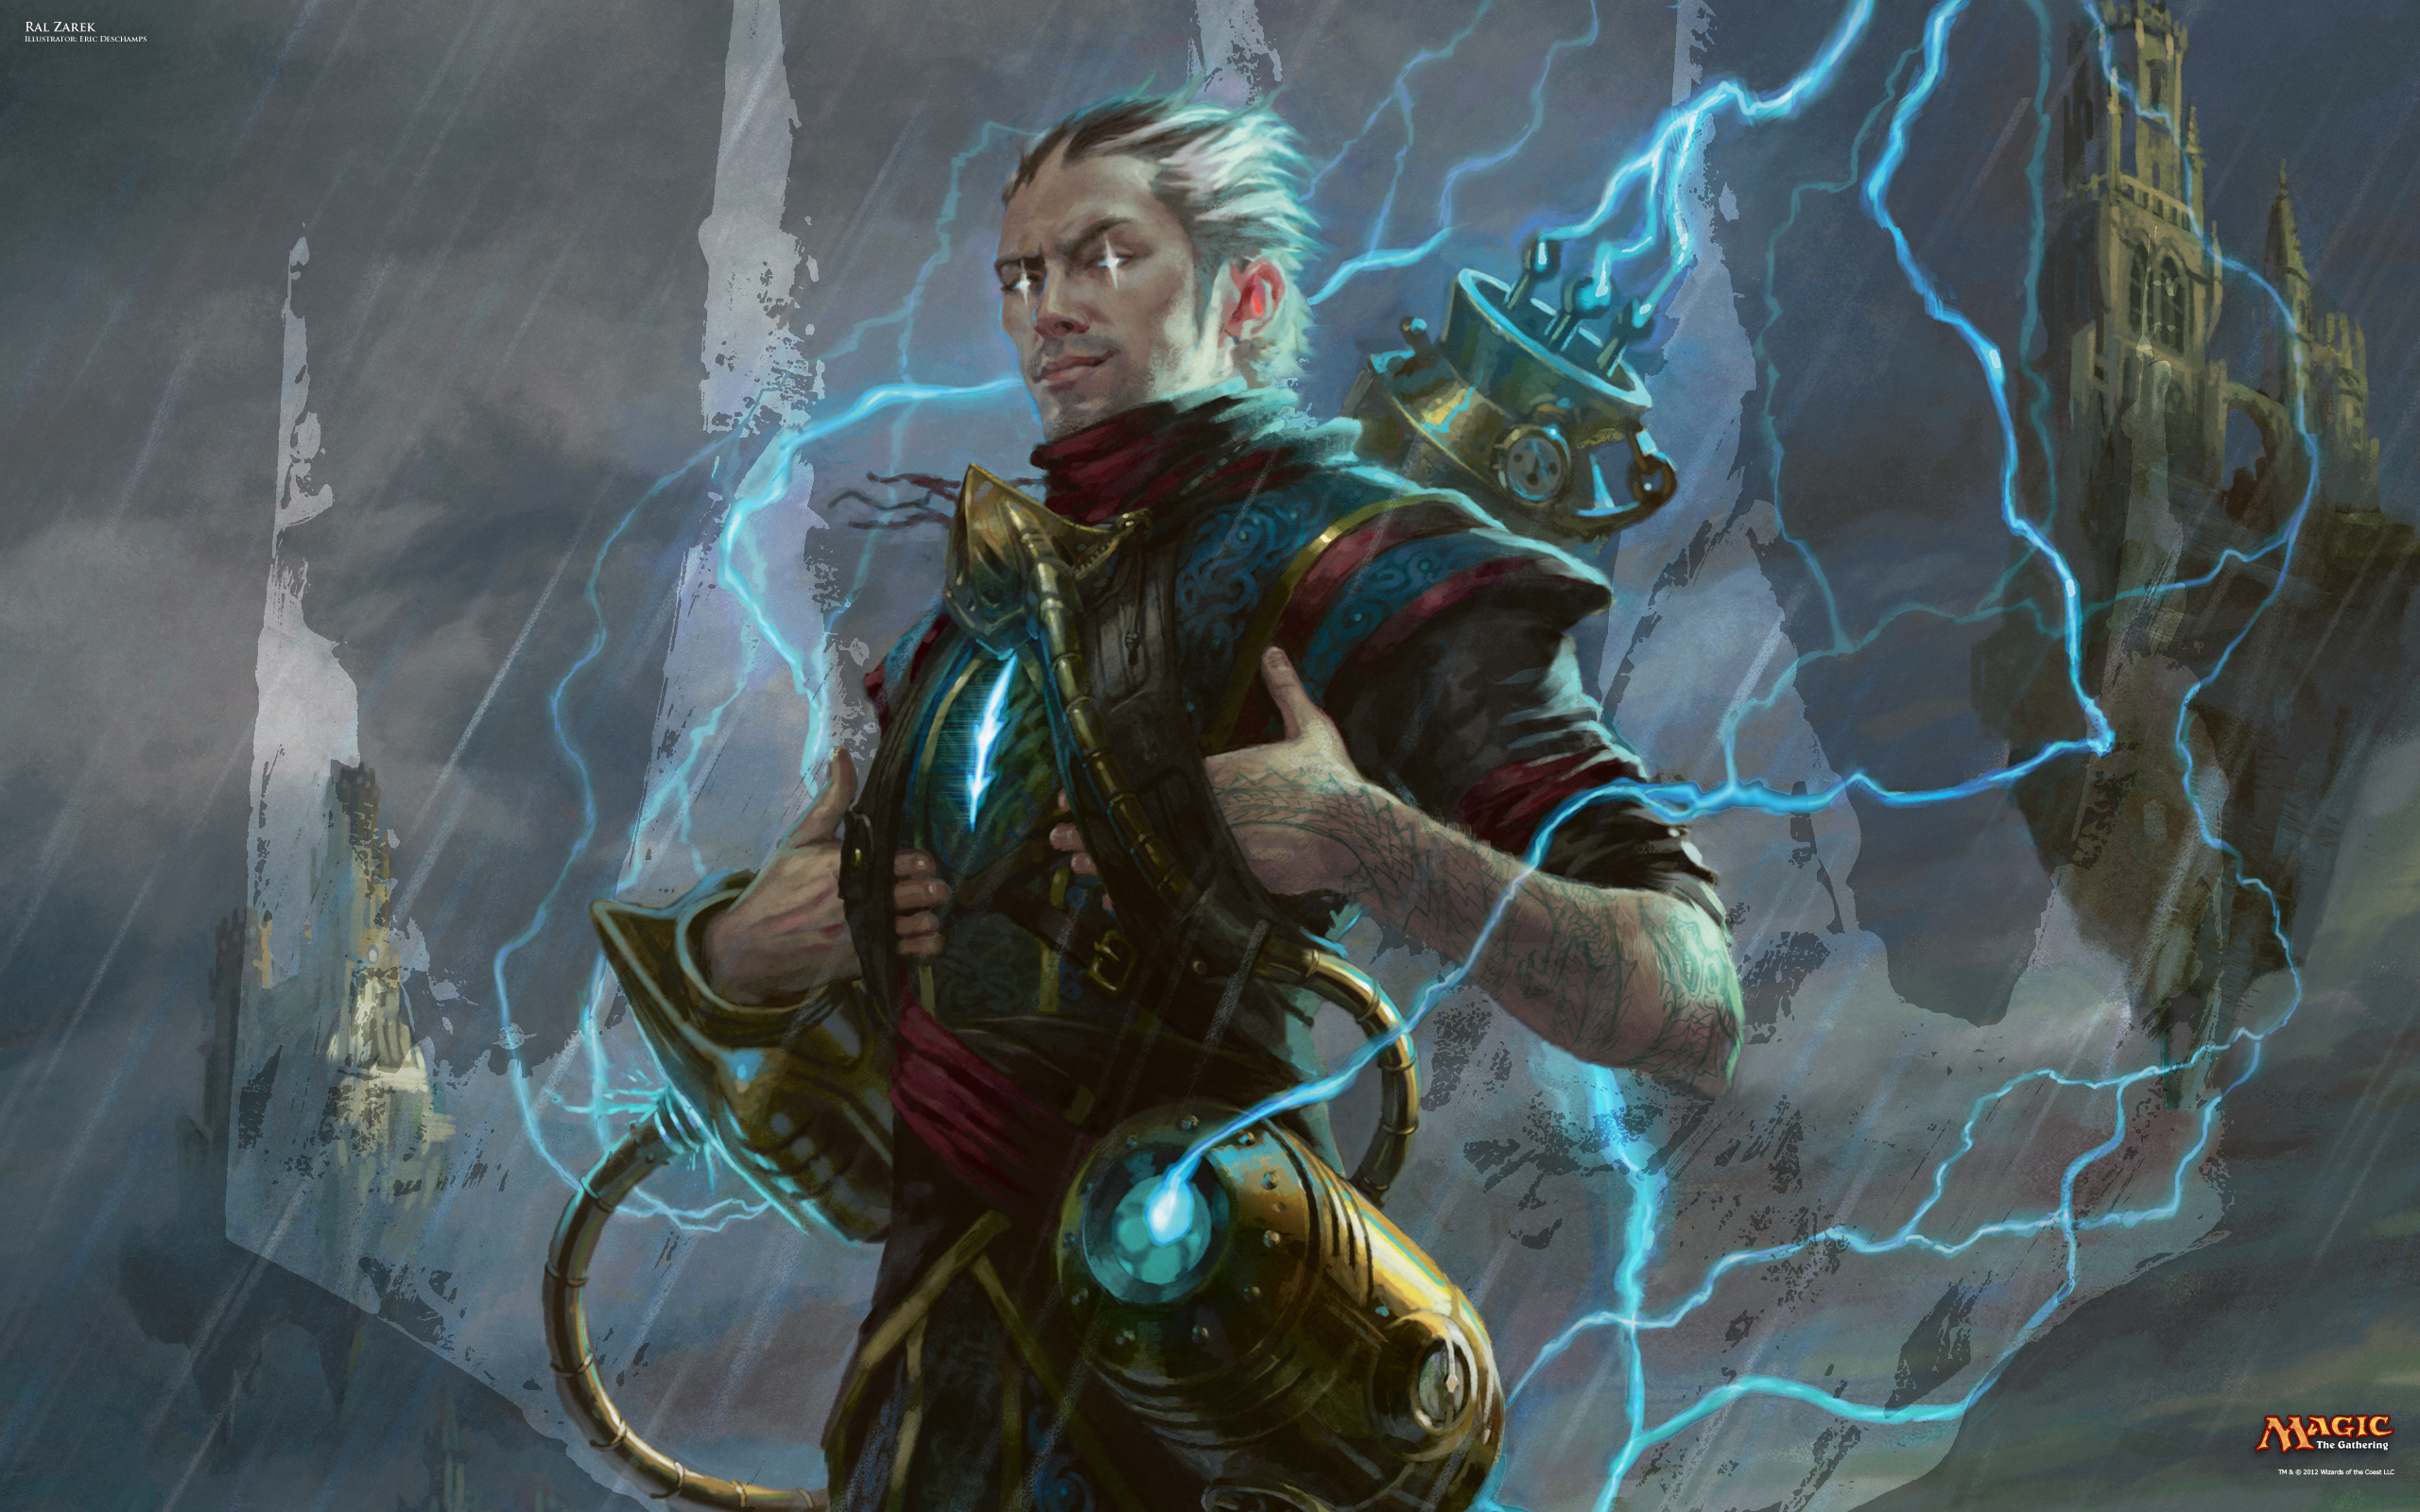 Free Download Magic The Gathering Wallpaper Planeswalker Wallpaper